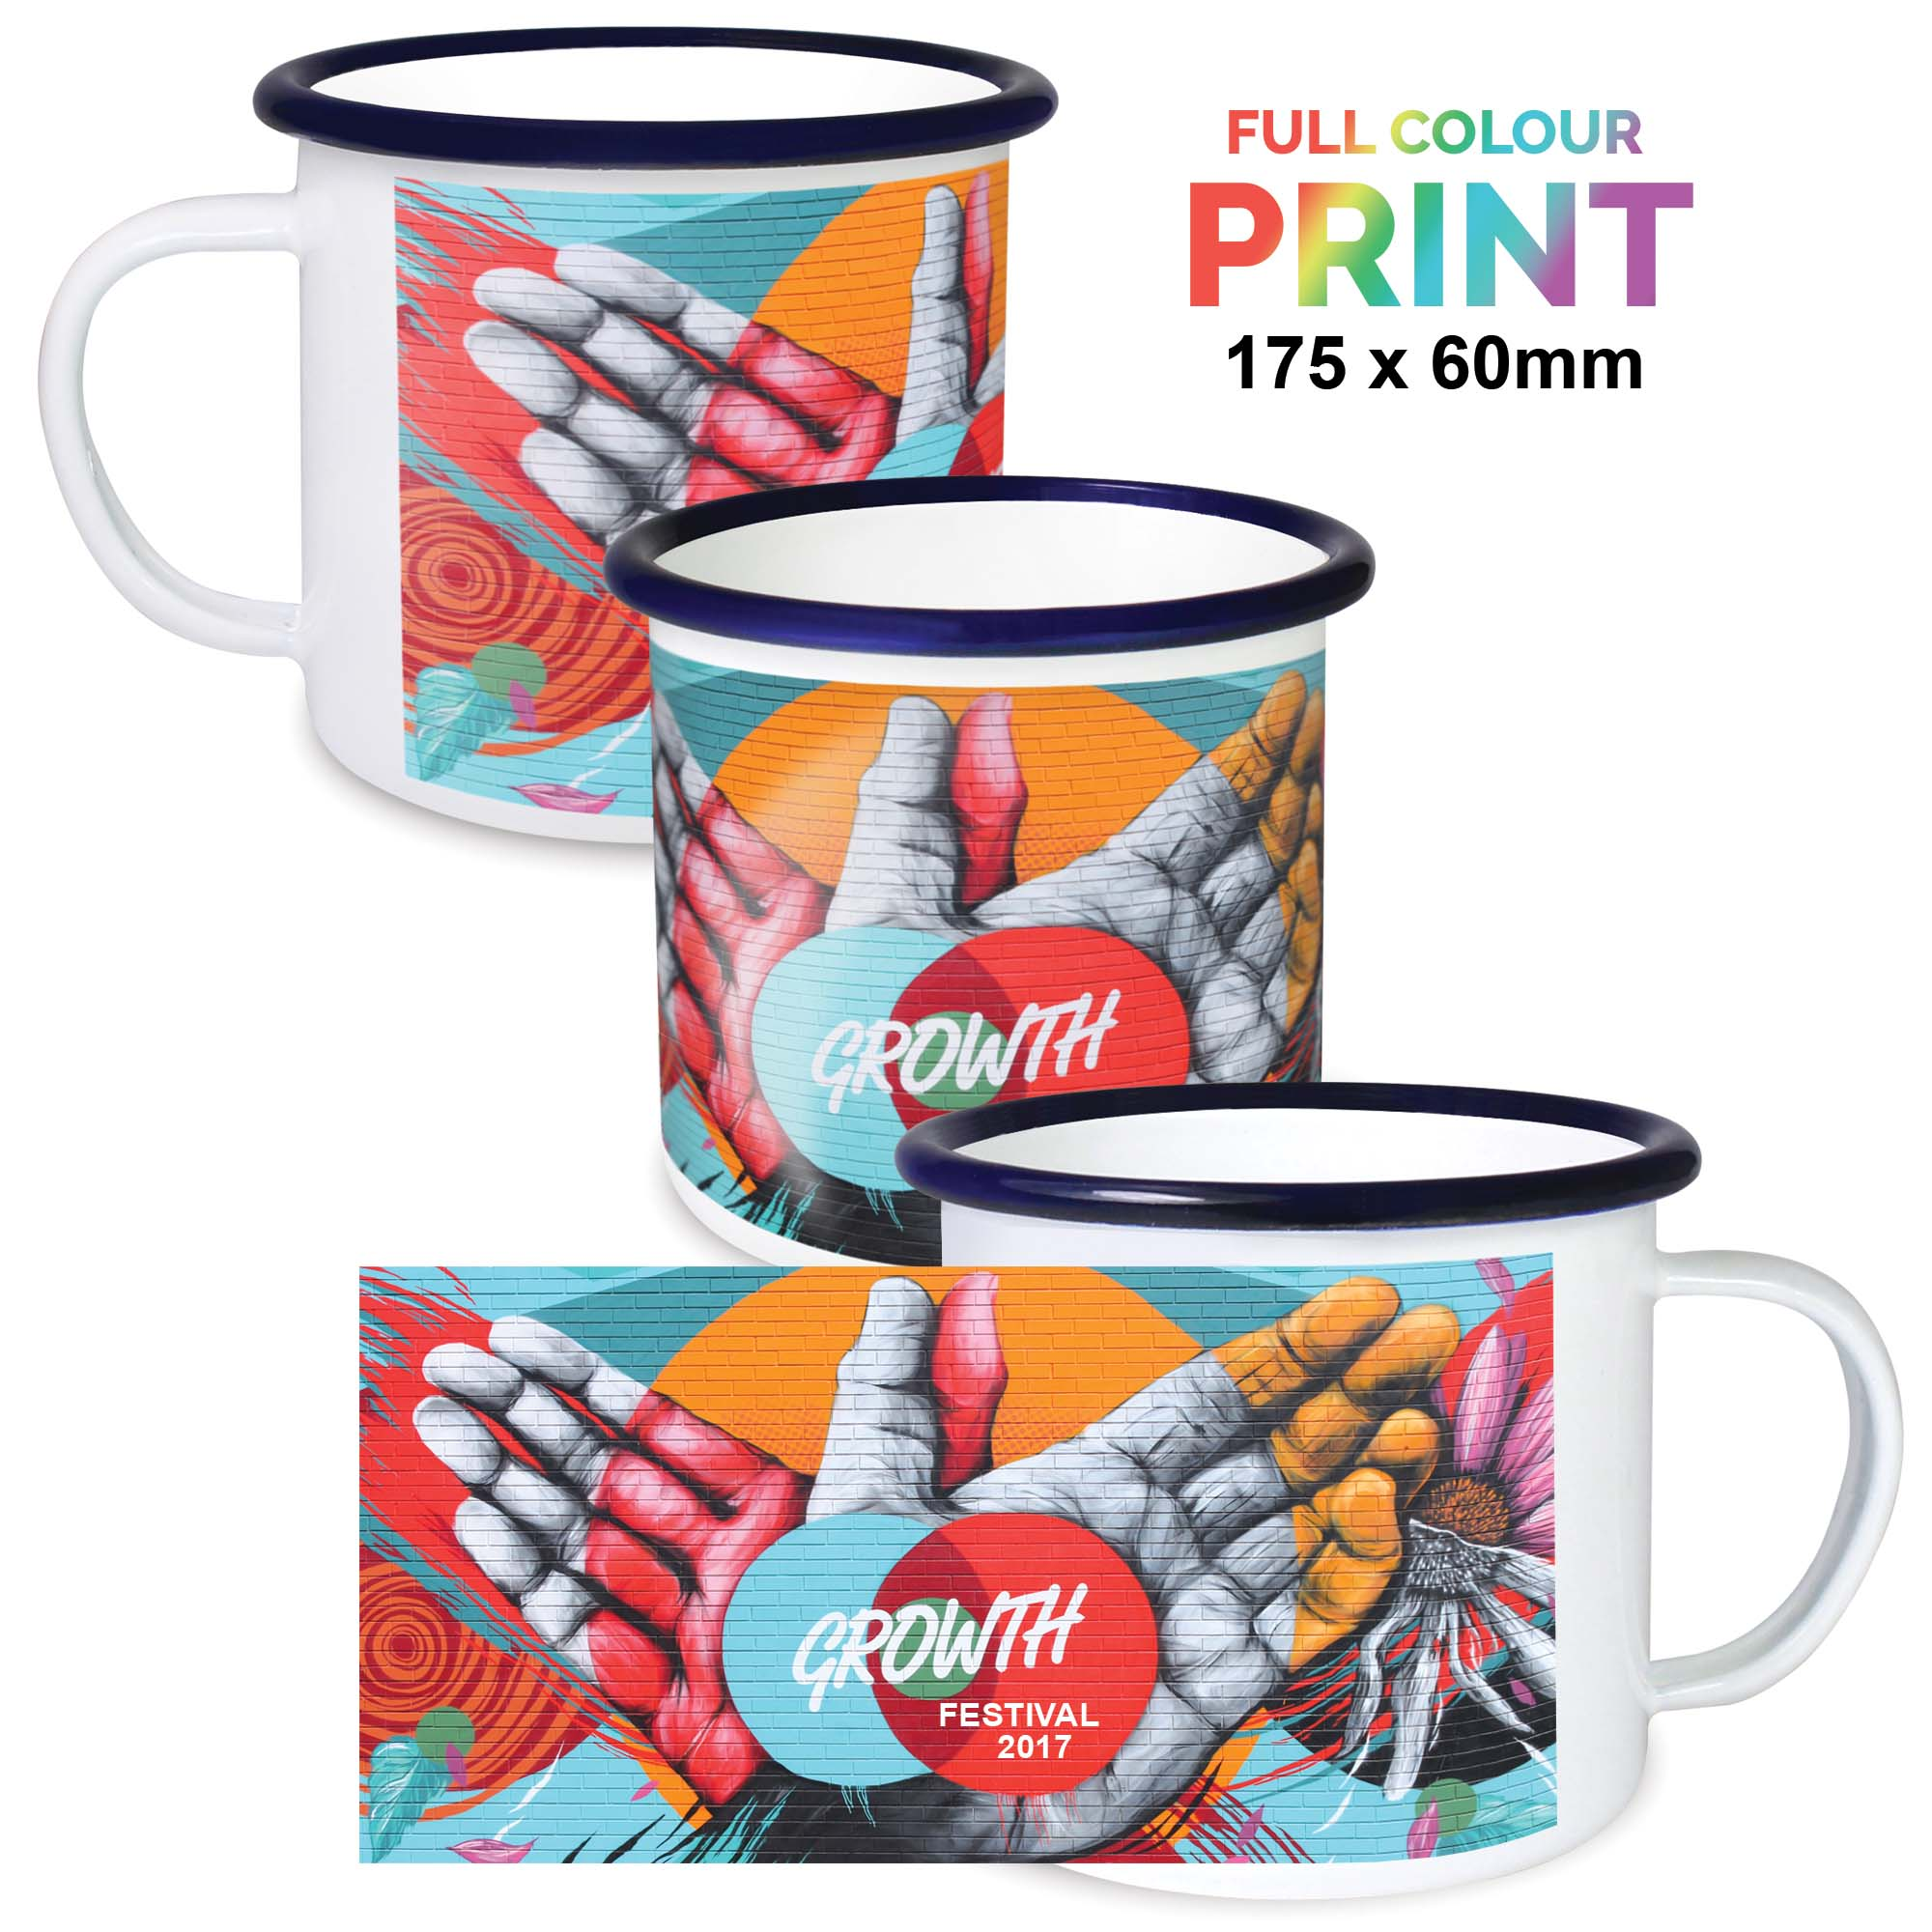 Premium Full Colour Enamel Mugs 10oz/285ml